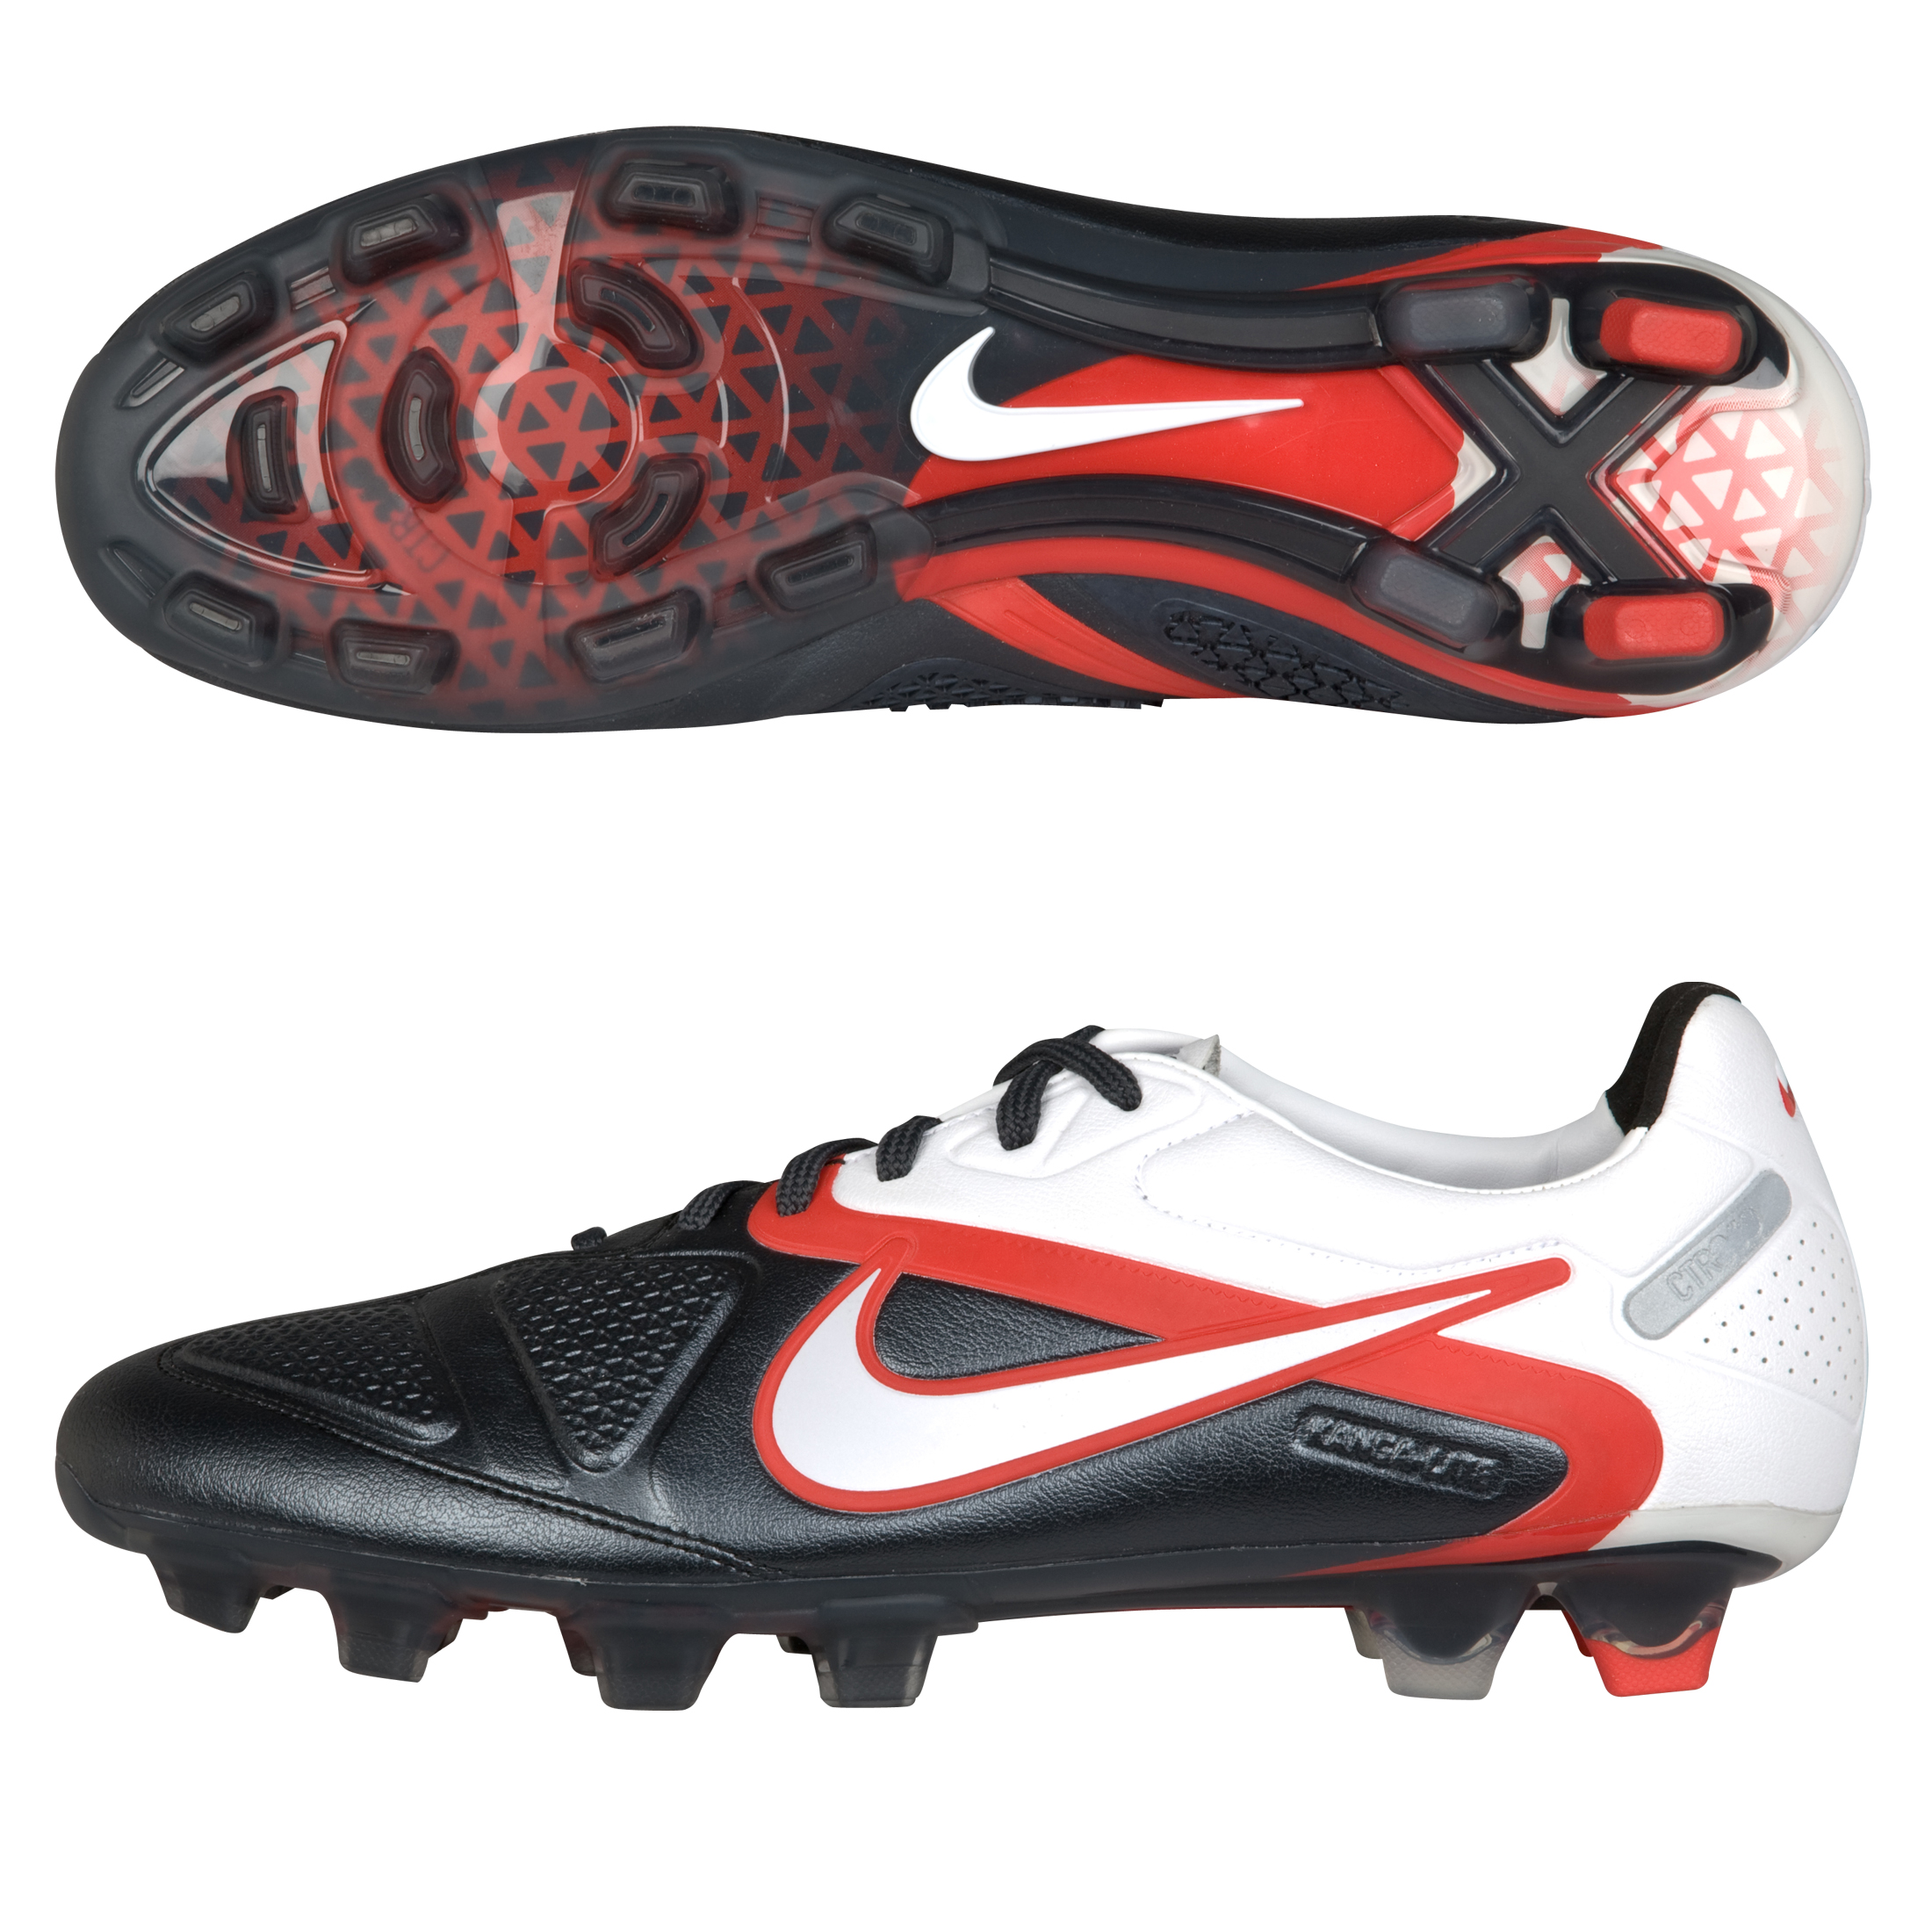 Nike CTR360 Maestri II Firm Ground Football Boots - Black/White/Challenge Red